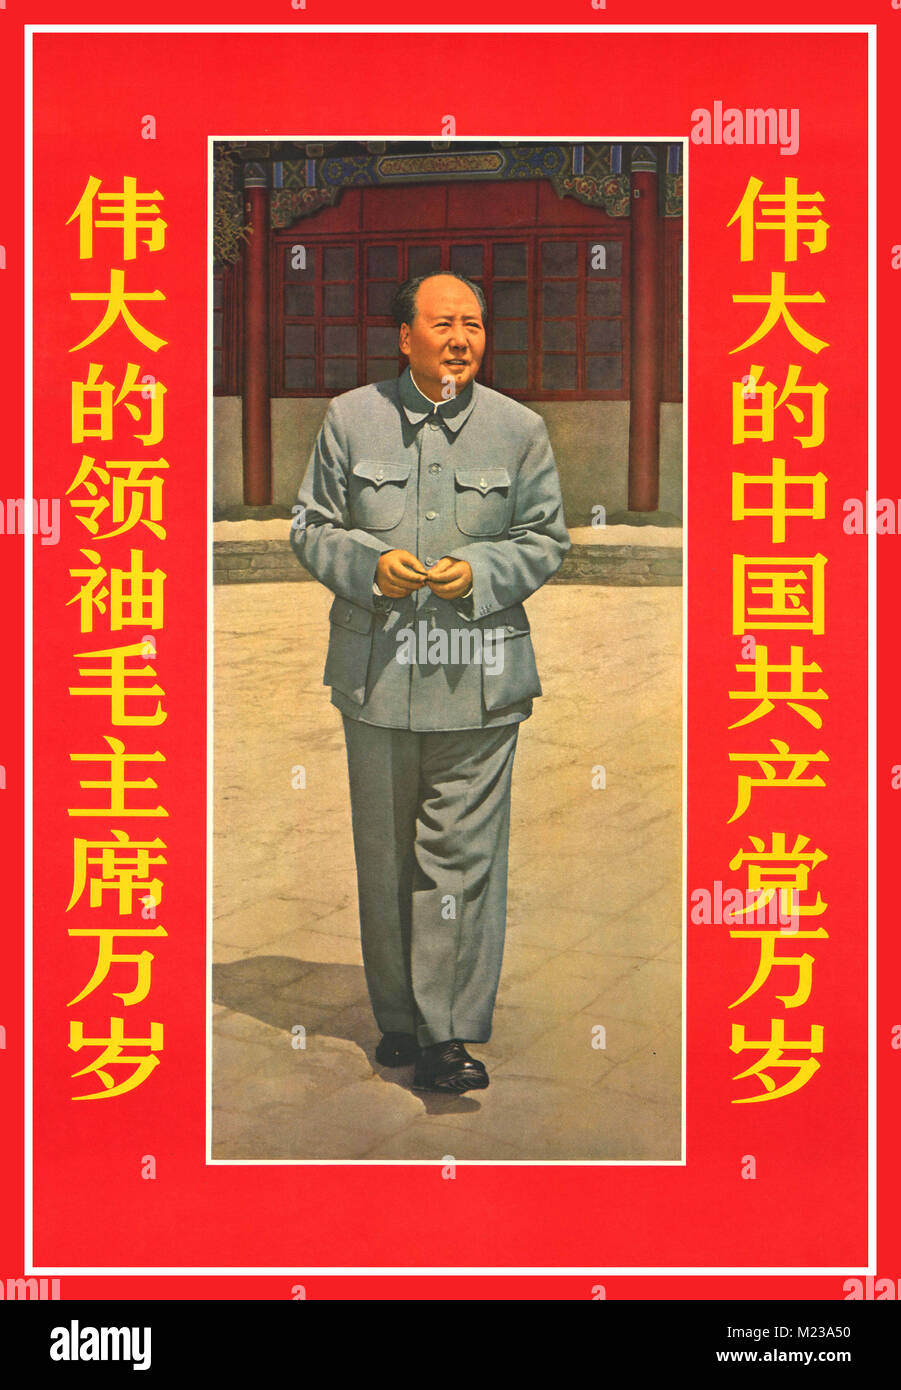 "Vintage propaganda Chinese Poster 1960's Left Text ""The Great Leader Chairman Mao Ten Thousand Years"" and Text on - Stock Image"